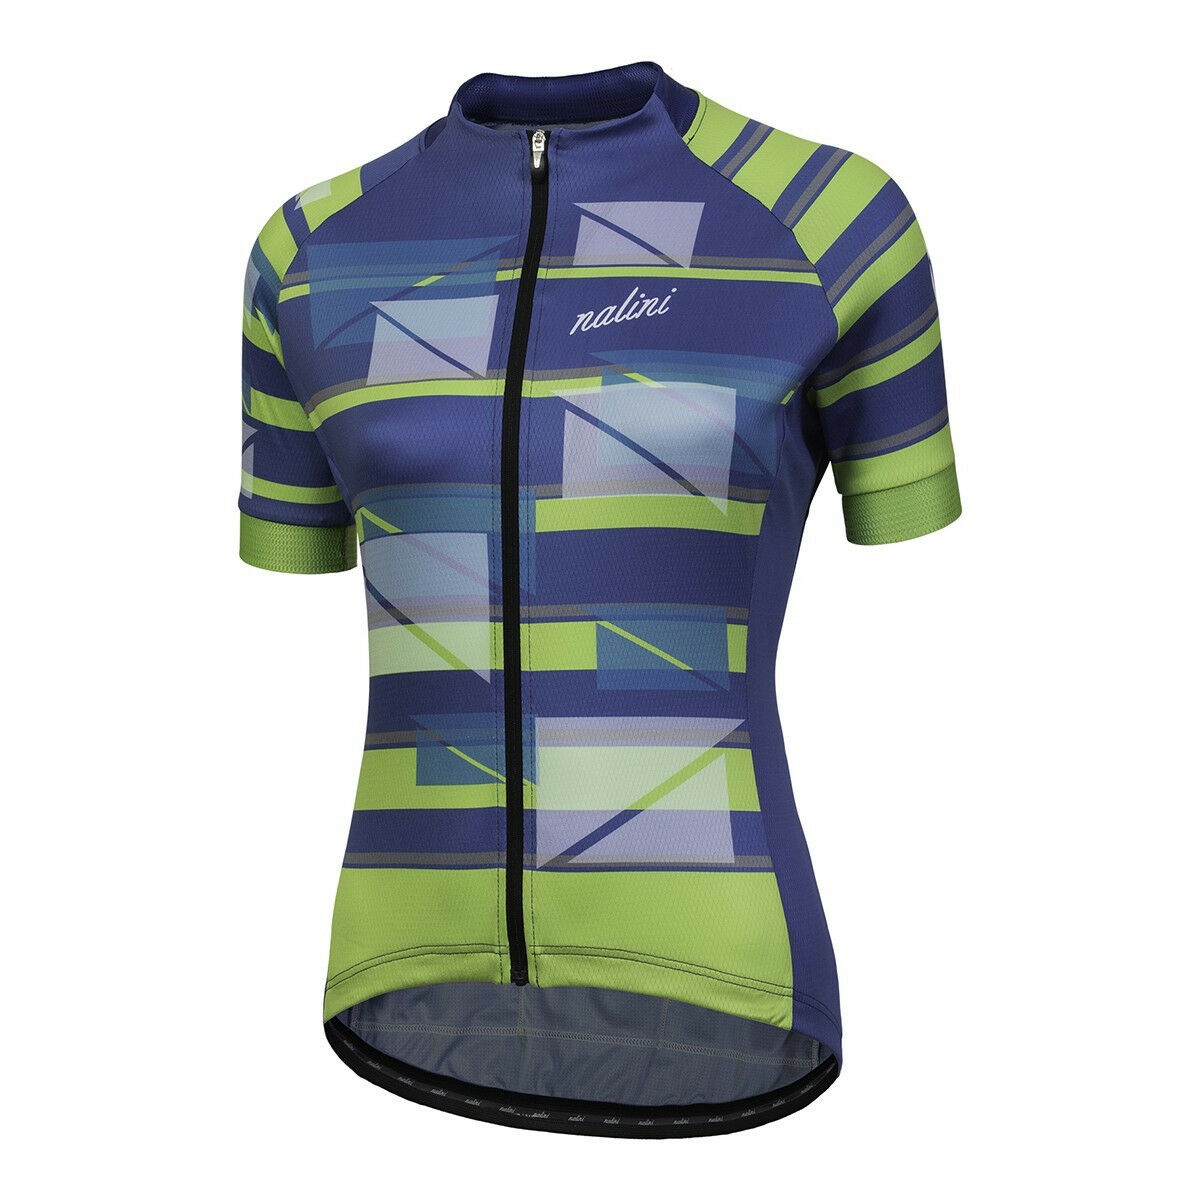 SHIRT NALINI TRENDY LADY blue GREEN Size M